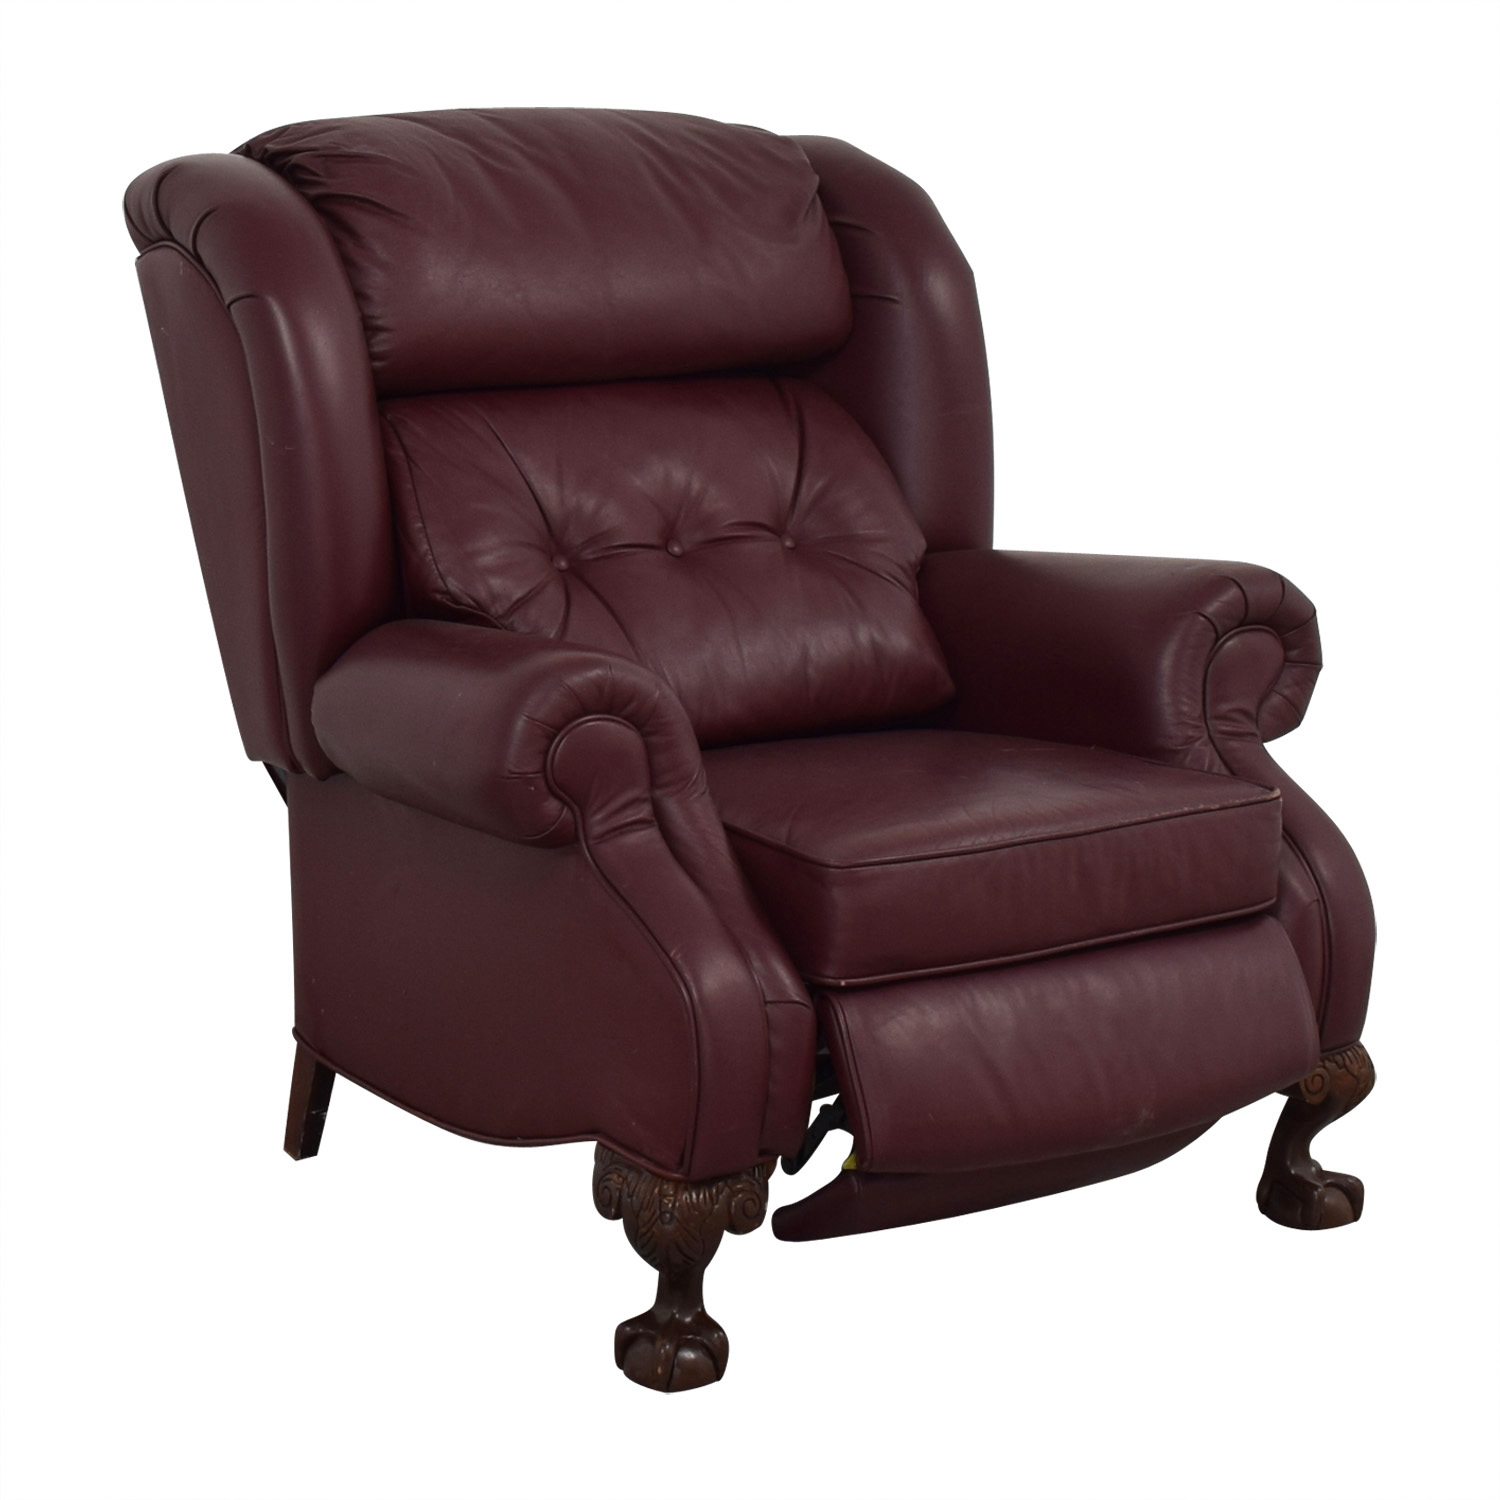 PeopLoungers PeopLoungers Burgundy Recliner discount